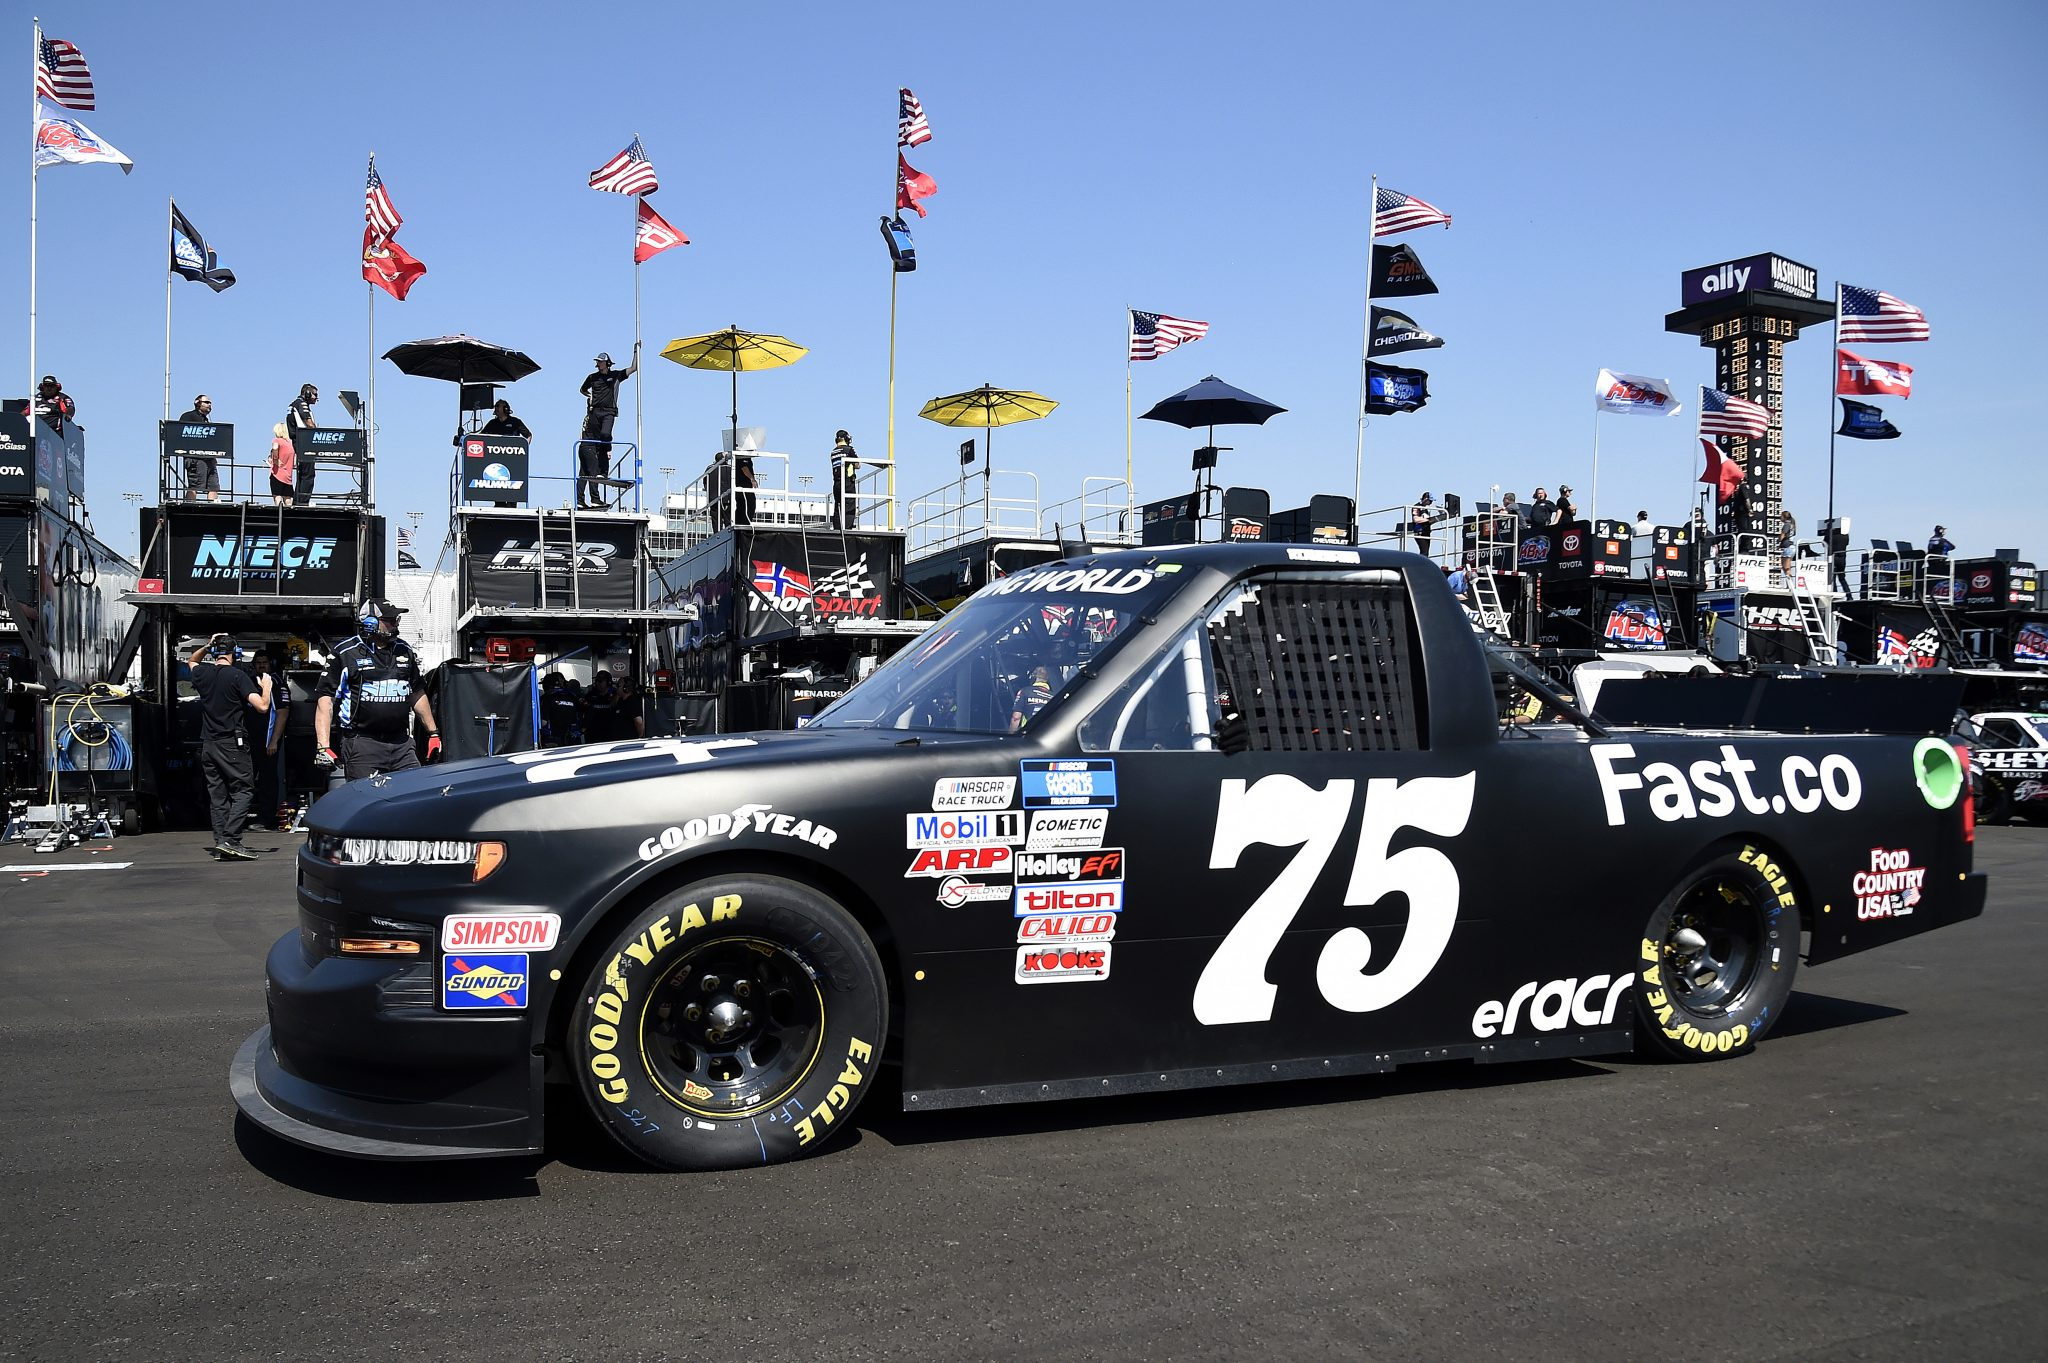 LEBANON, TENNESSEE - JUNE 18: Parker Kligerman, driver of the #75 Fast Checkout Chevrolet, drives in the garage area during practice for the NASCAR Camping World Truck Series Rackley Roofing 200 at Nashville Superspeedway on June 18, 2021 in Lebanon, Tennessee. (Photo by Logan Riely/Getty Images) | Getty Images